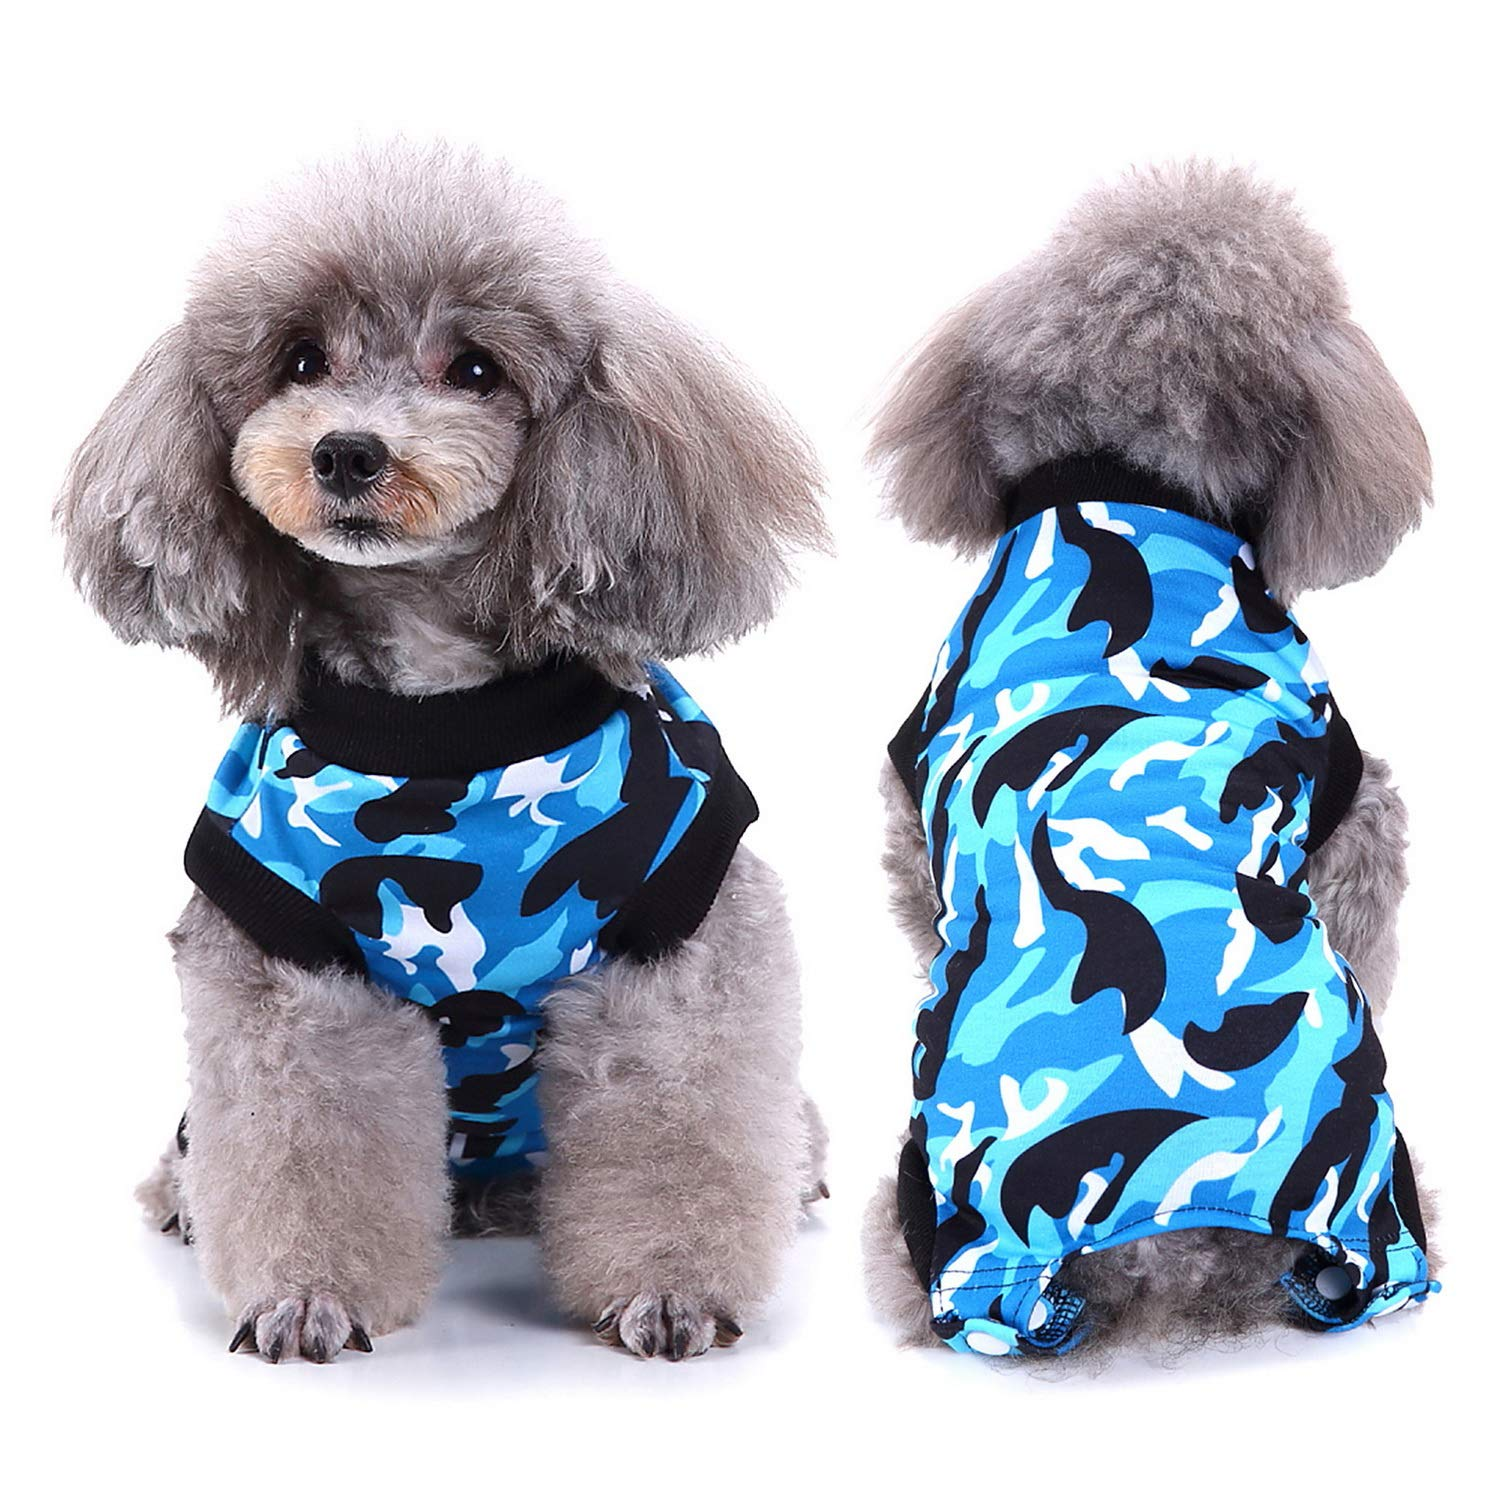 SELMAI Dog Recovery Shirt Pet Belly Guard Cat Onesie Wrap Vest for Pooch After Surgery Puppies Care E-Collar Alternative Clothing Fashion Camo Printing,Blue XS by SELMAI